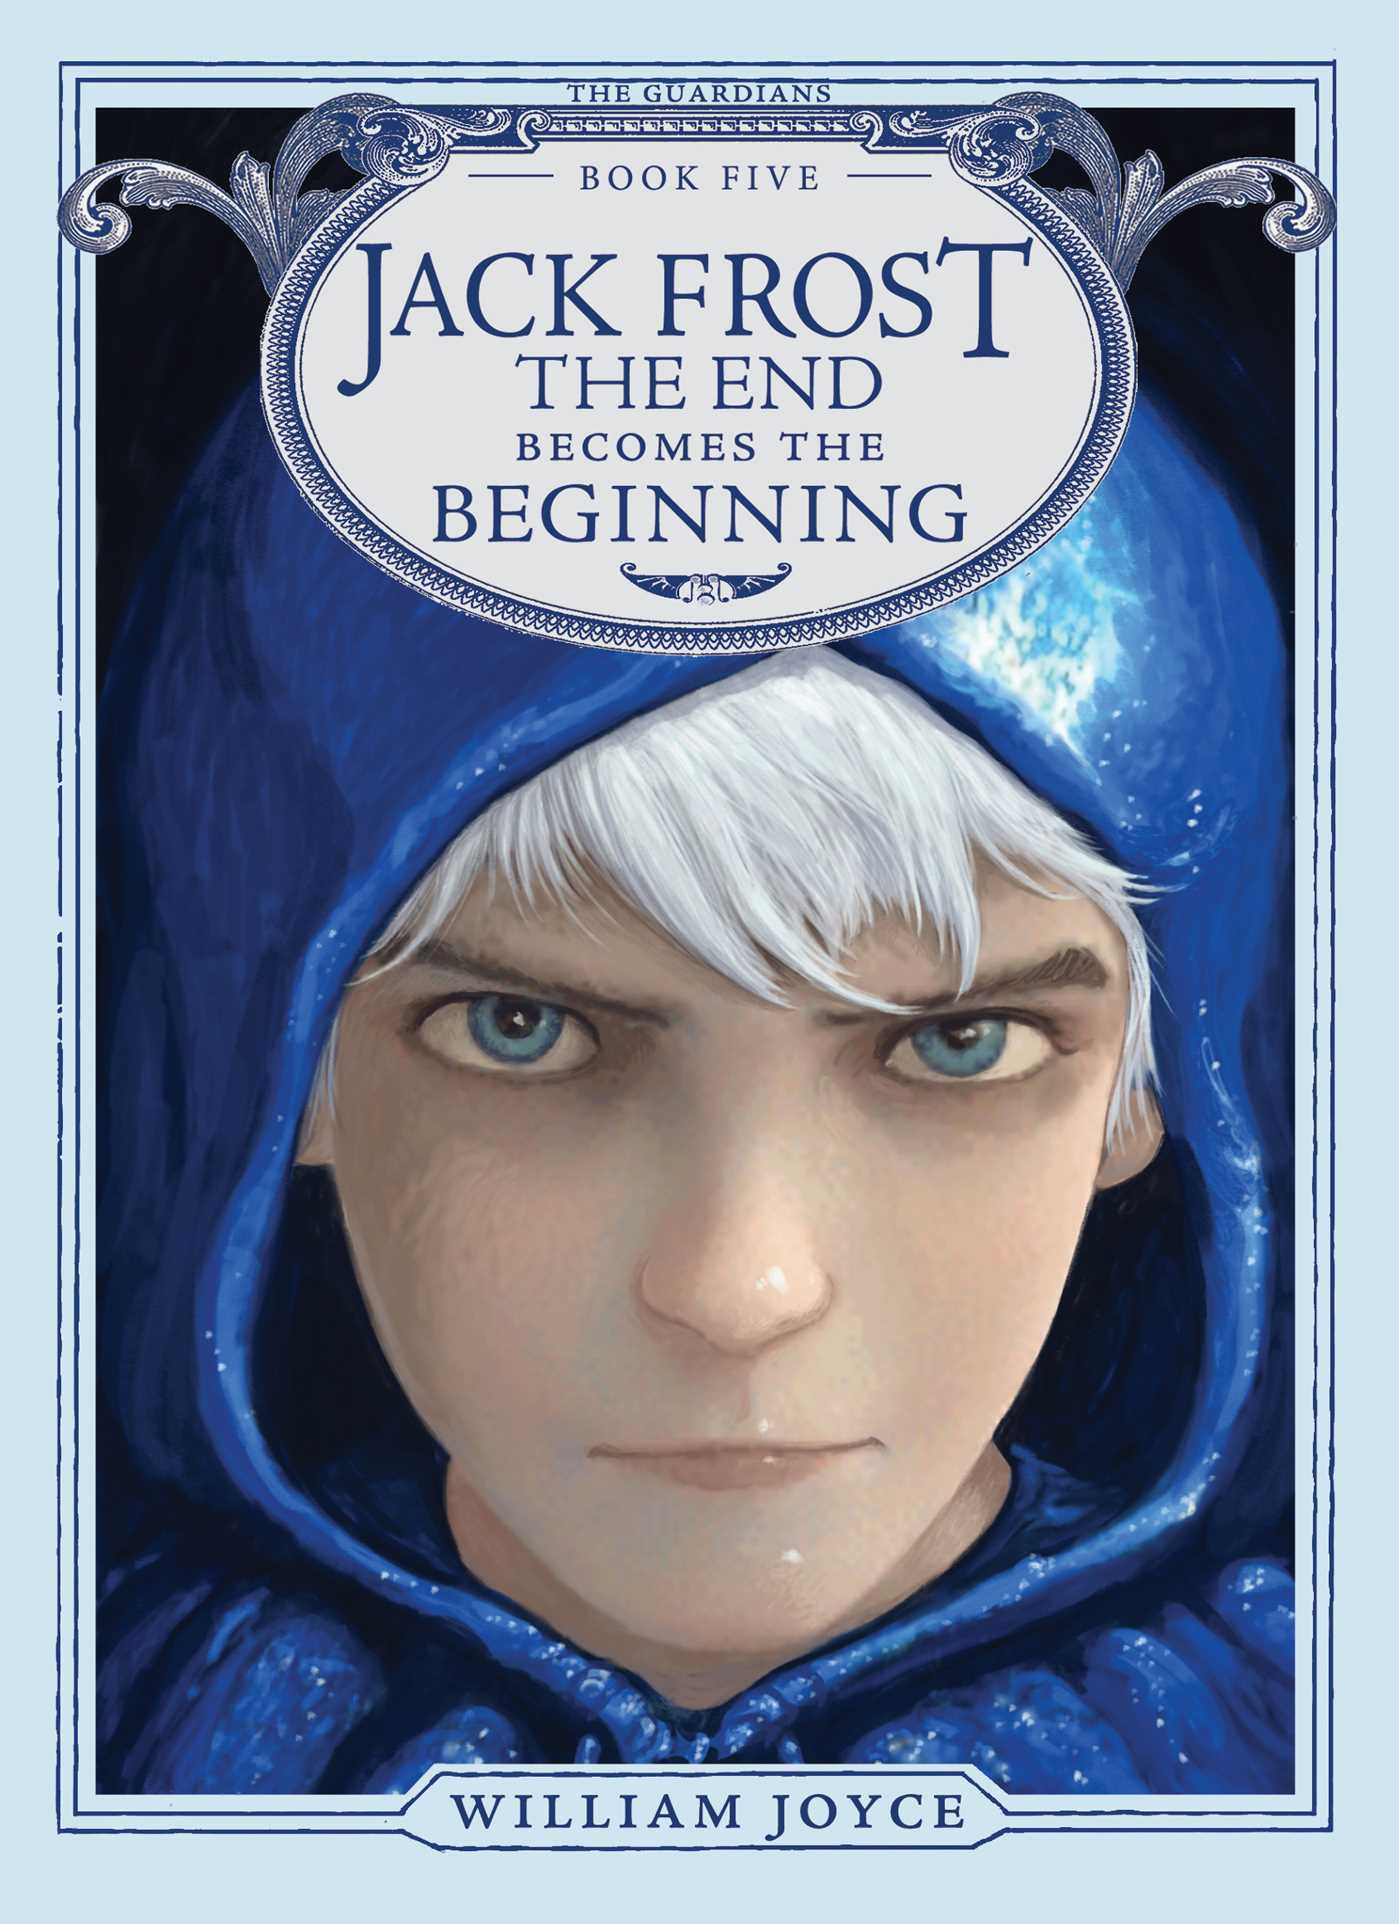 Jack frost 9781442430563 hr